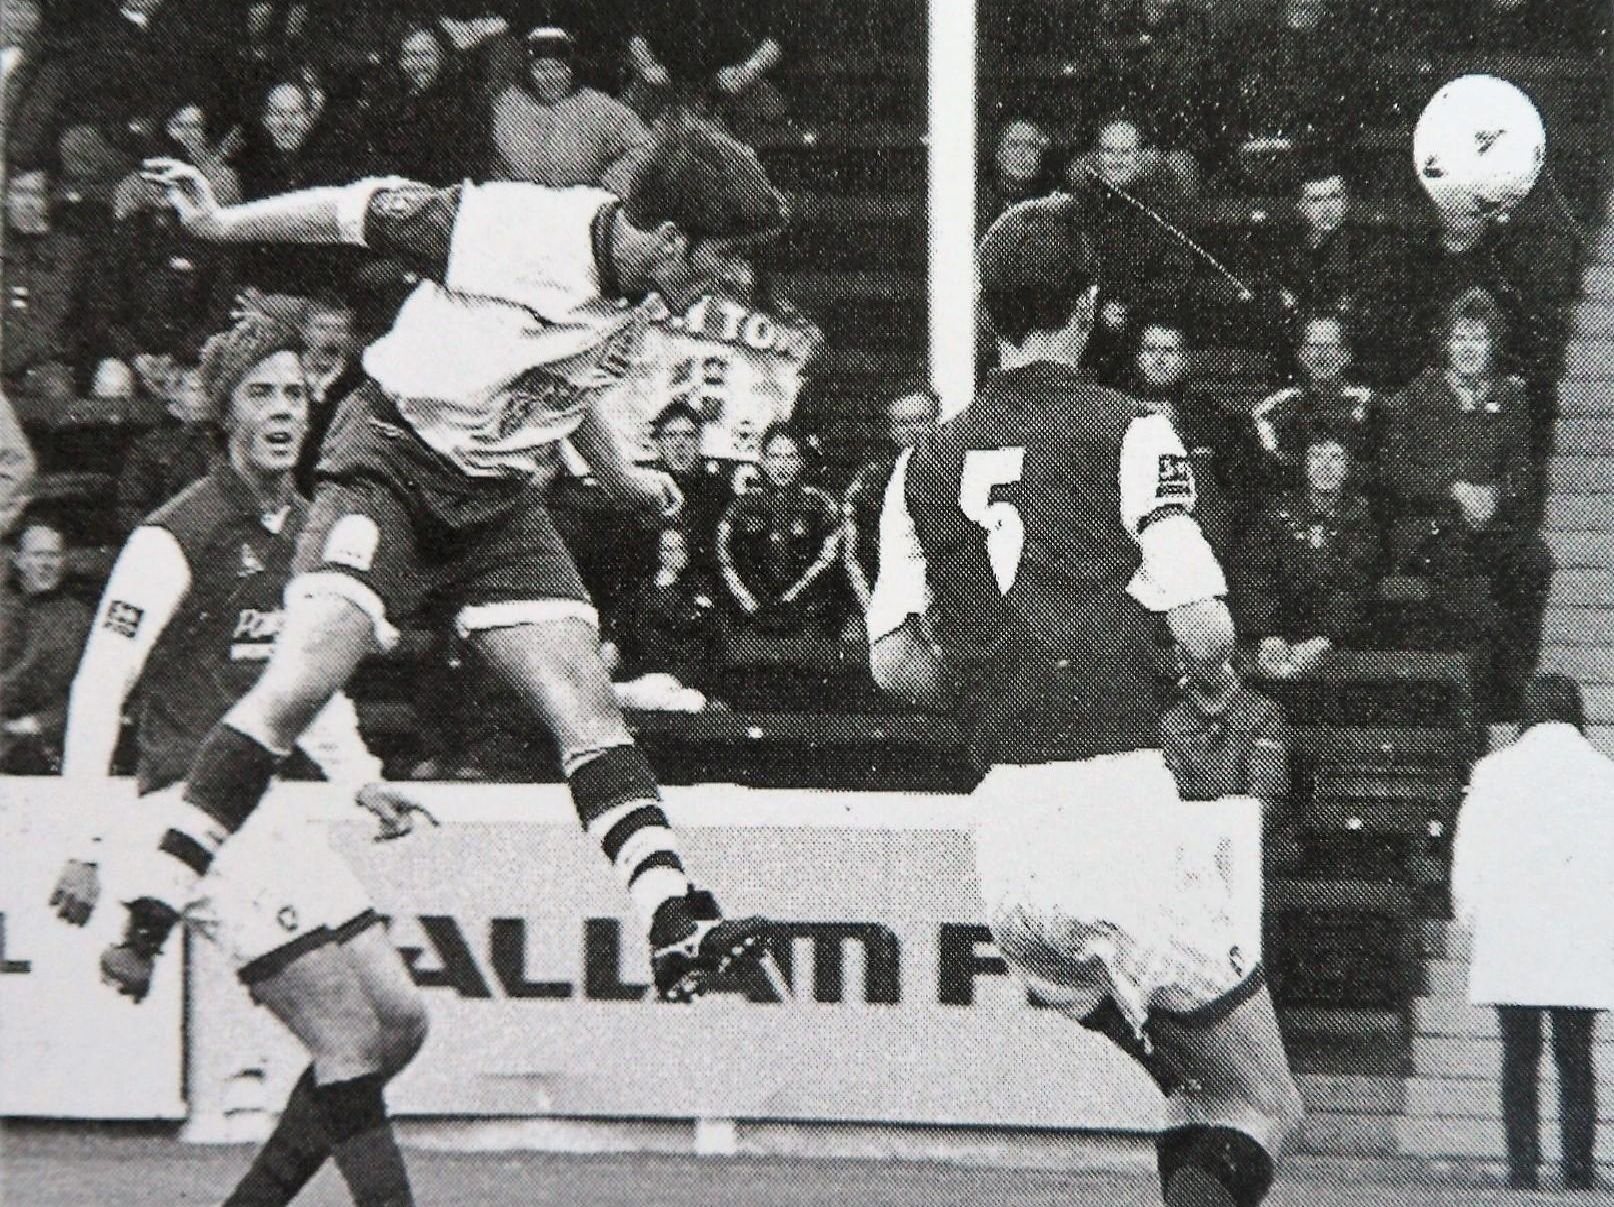 Tony Thorpe scores yet another goal for the Hatters during his Town career